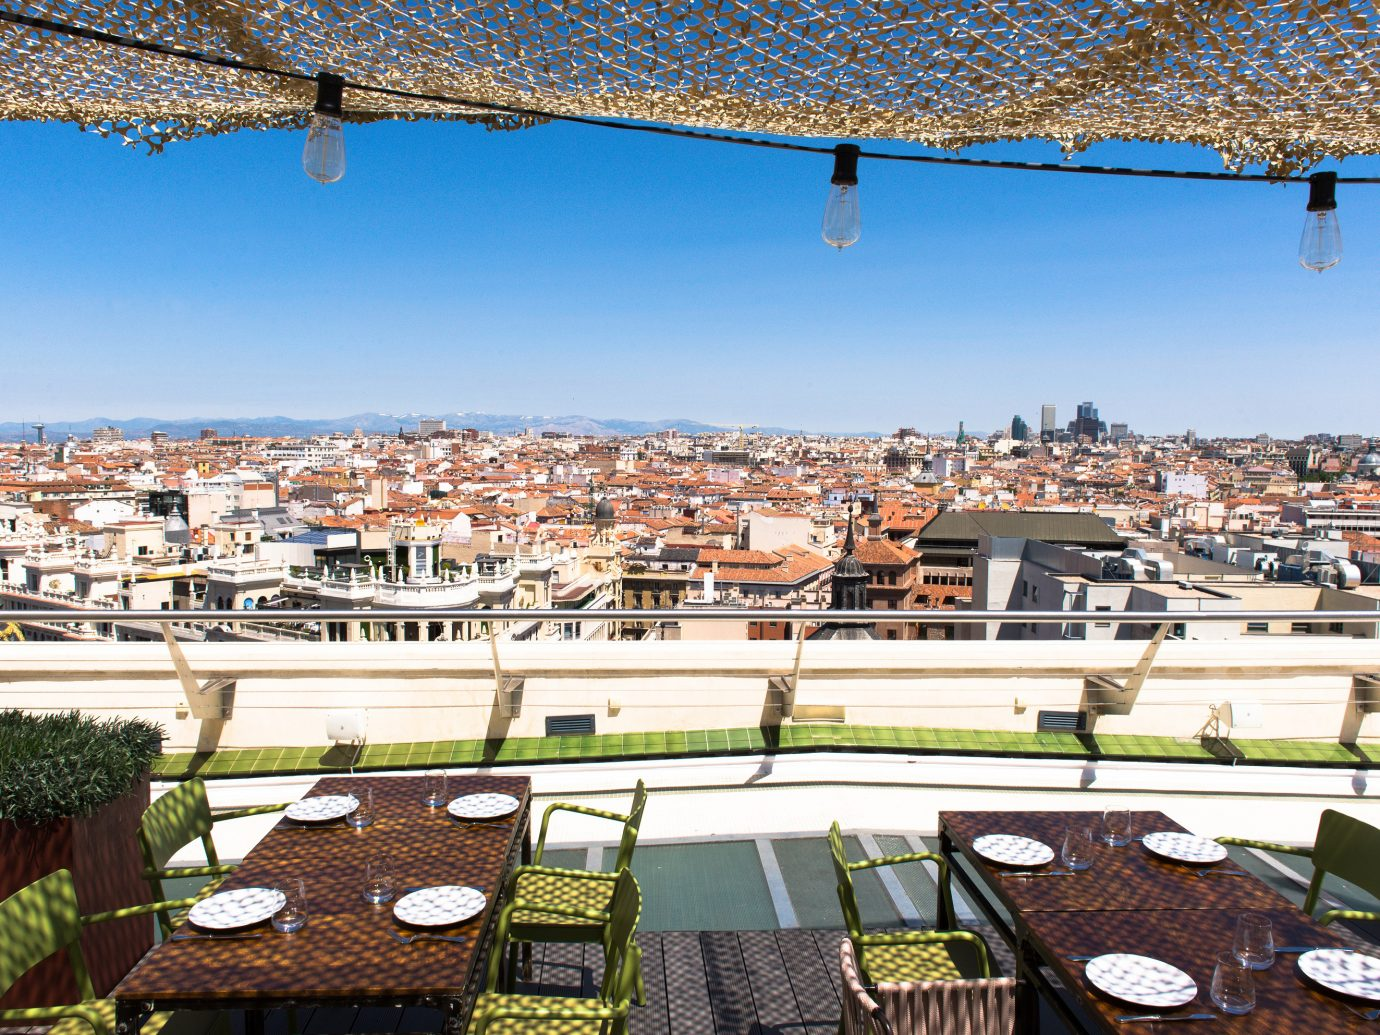 Rooftop bar of Circulo de Bellas Artes